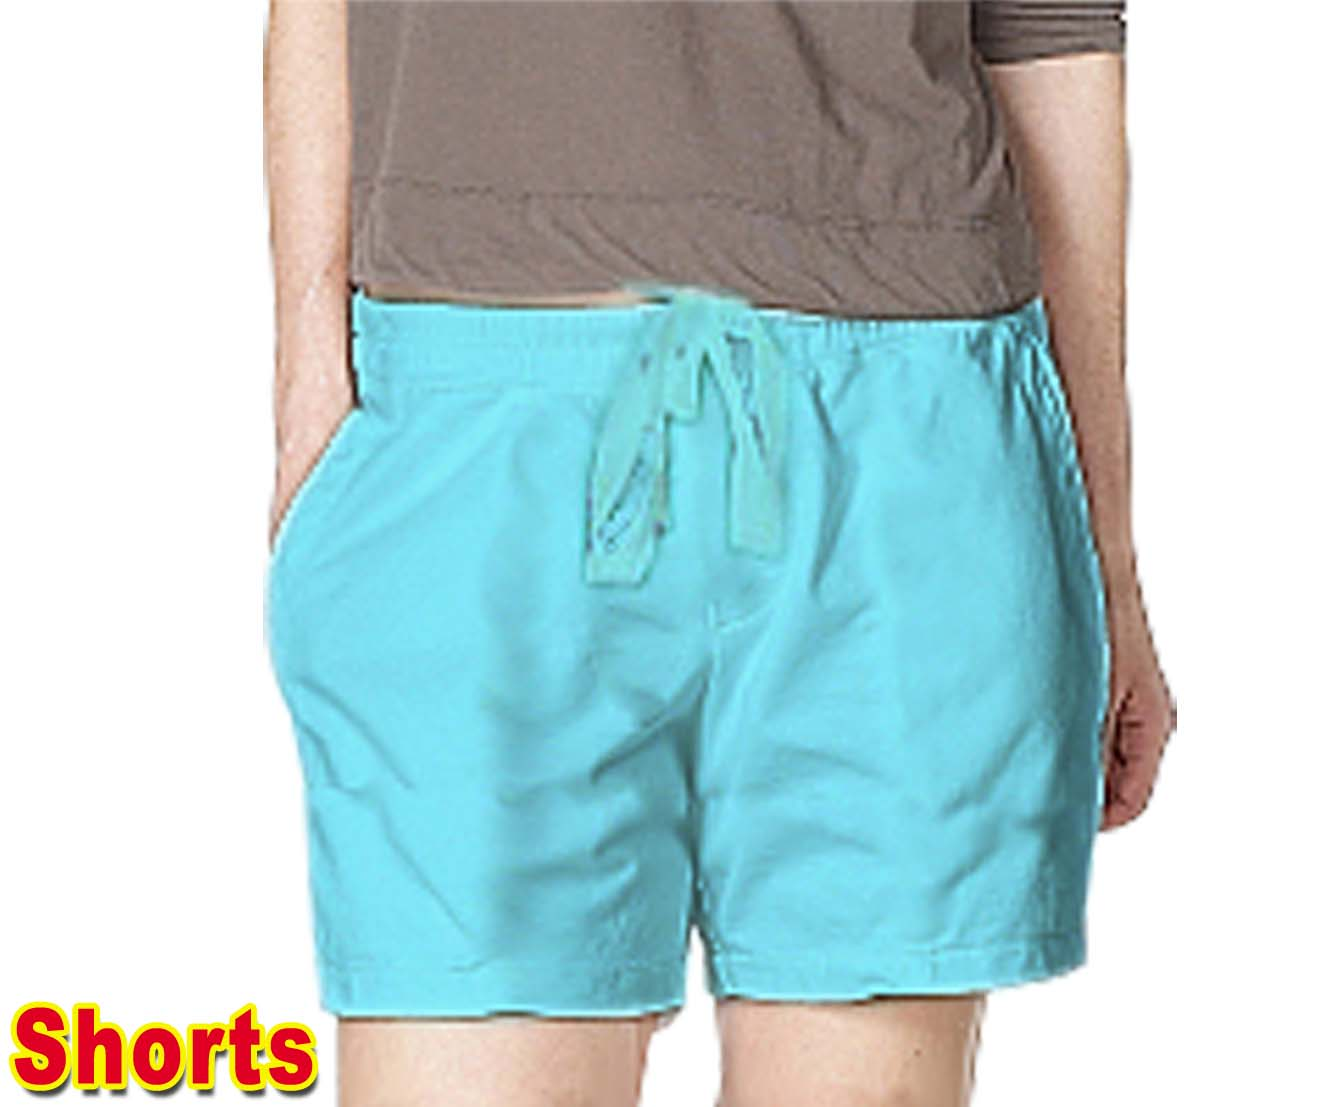 Microfiber fabric short with 2 side pocket 1 back pocket (inseam is 5 inches)